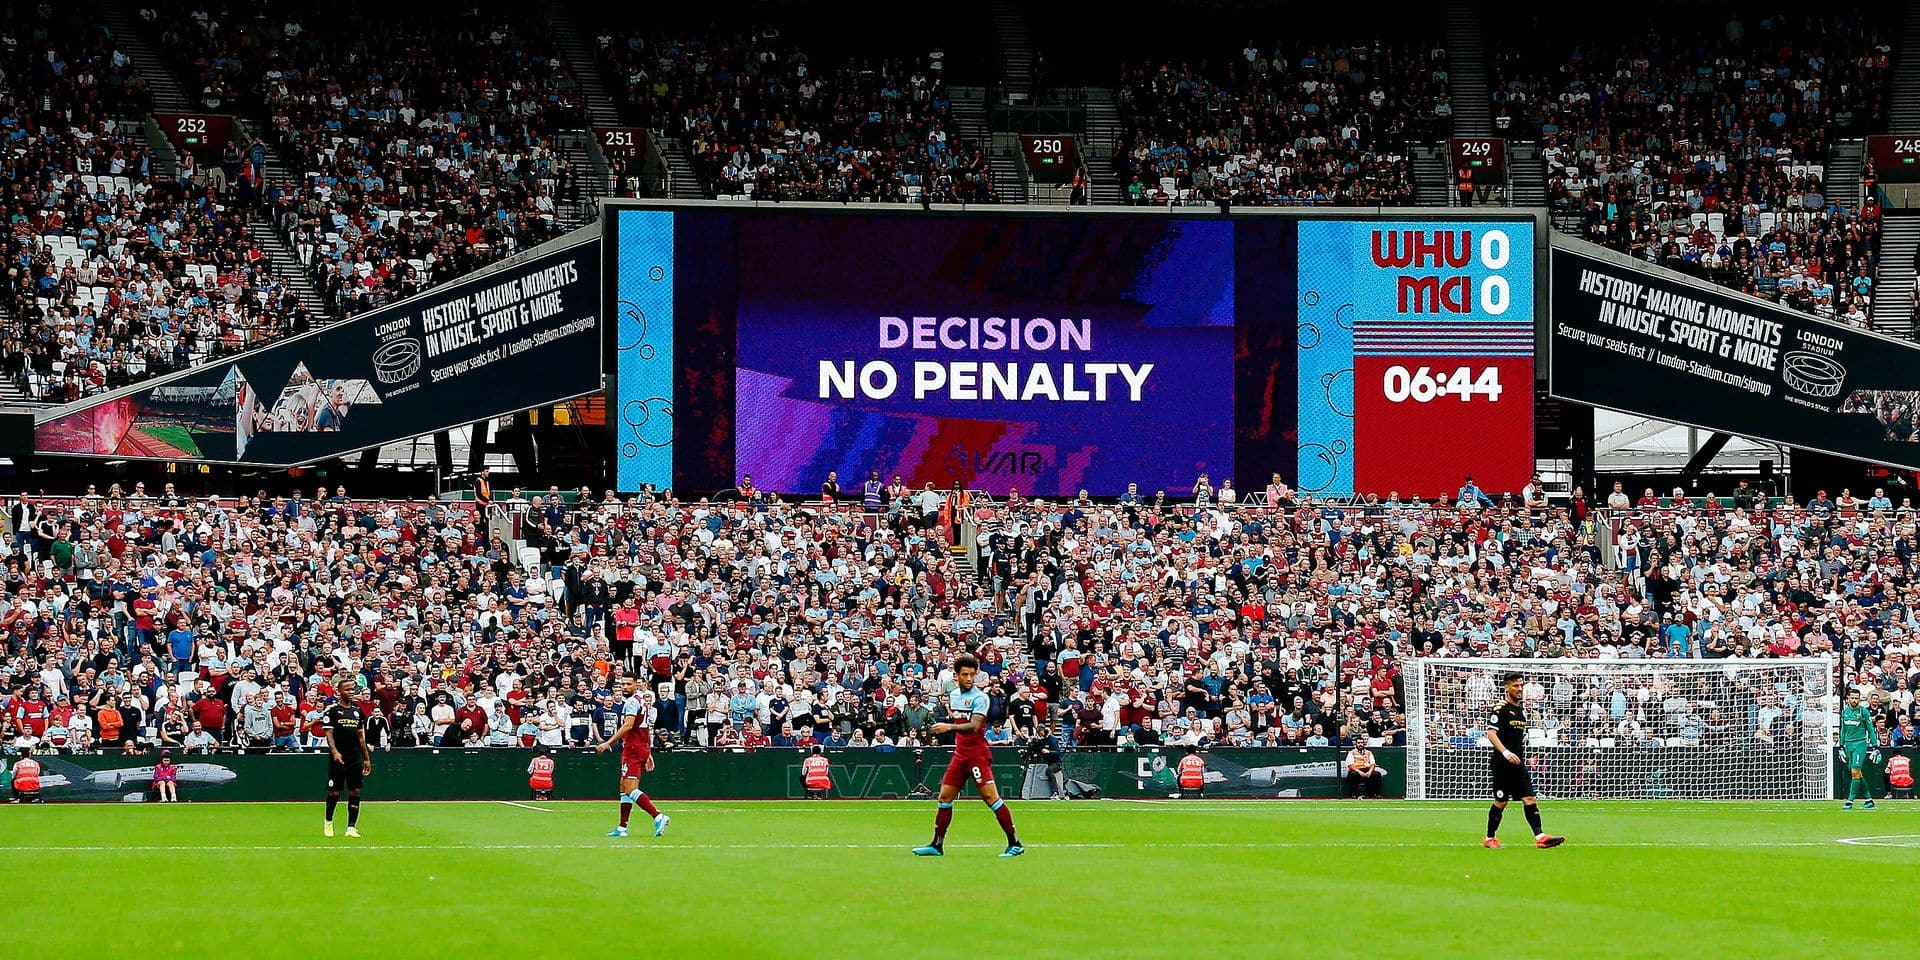 A big screen displays the VAR decision on a penalty shout during the English Premier League football match between West Ham United and Manchester City at The London Stadium, in east London on August 10, 2019. (Photo by Ian KINGTON / AFP) / RESTRICTED TO EDITORIAL USE. No use with unauthorized audio, video, data, fixture lists, club/league logos or 'live' services. Online in-match use limited to 120 images. An additional 40 images may be used in extra time. No video emulation. Social media in-match use limited to 120 images. An additional 40 images may be used in extra time. No use in betting publications, games or single club/league/player publications. /